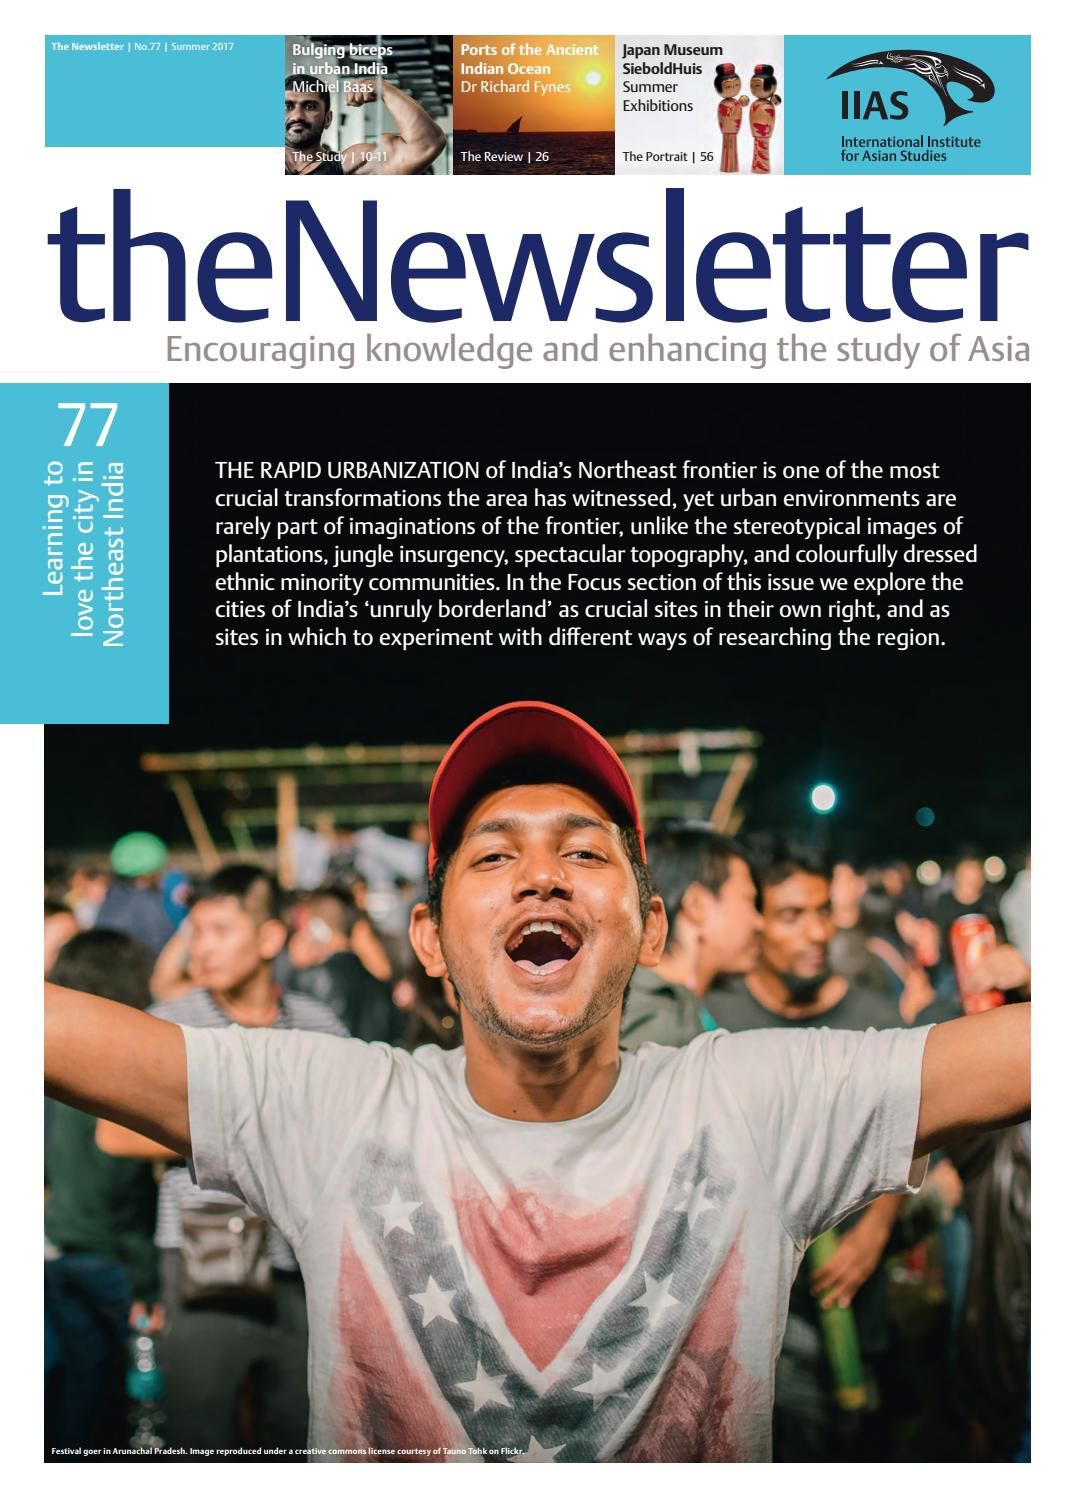 The Newsletter 77 Summer 2017 by International Institute for Asian Studies  - issuu 6f0b2c8151